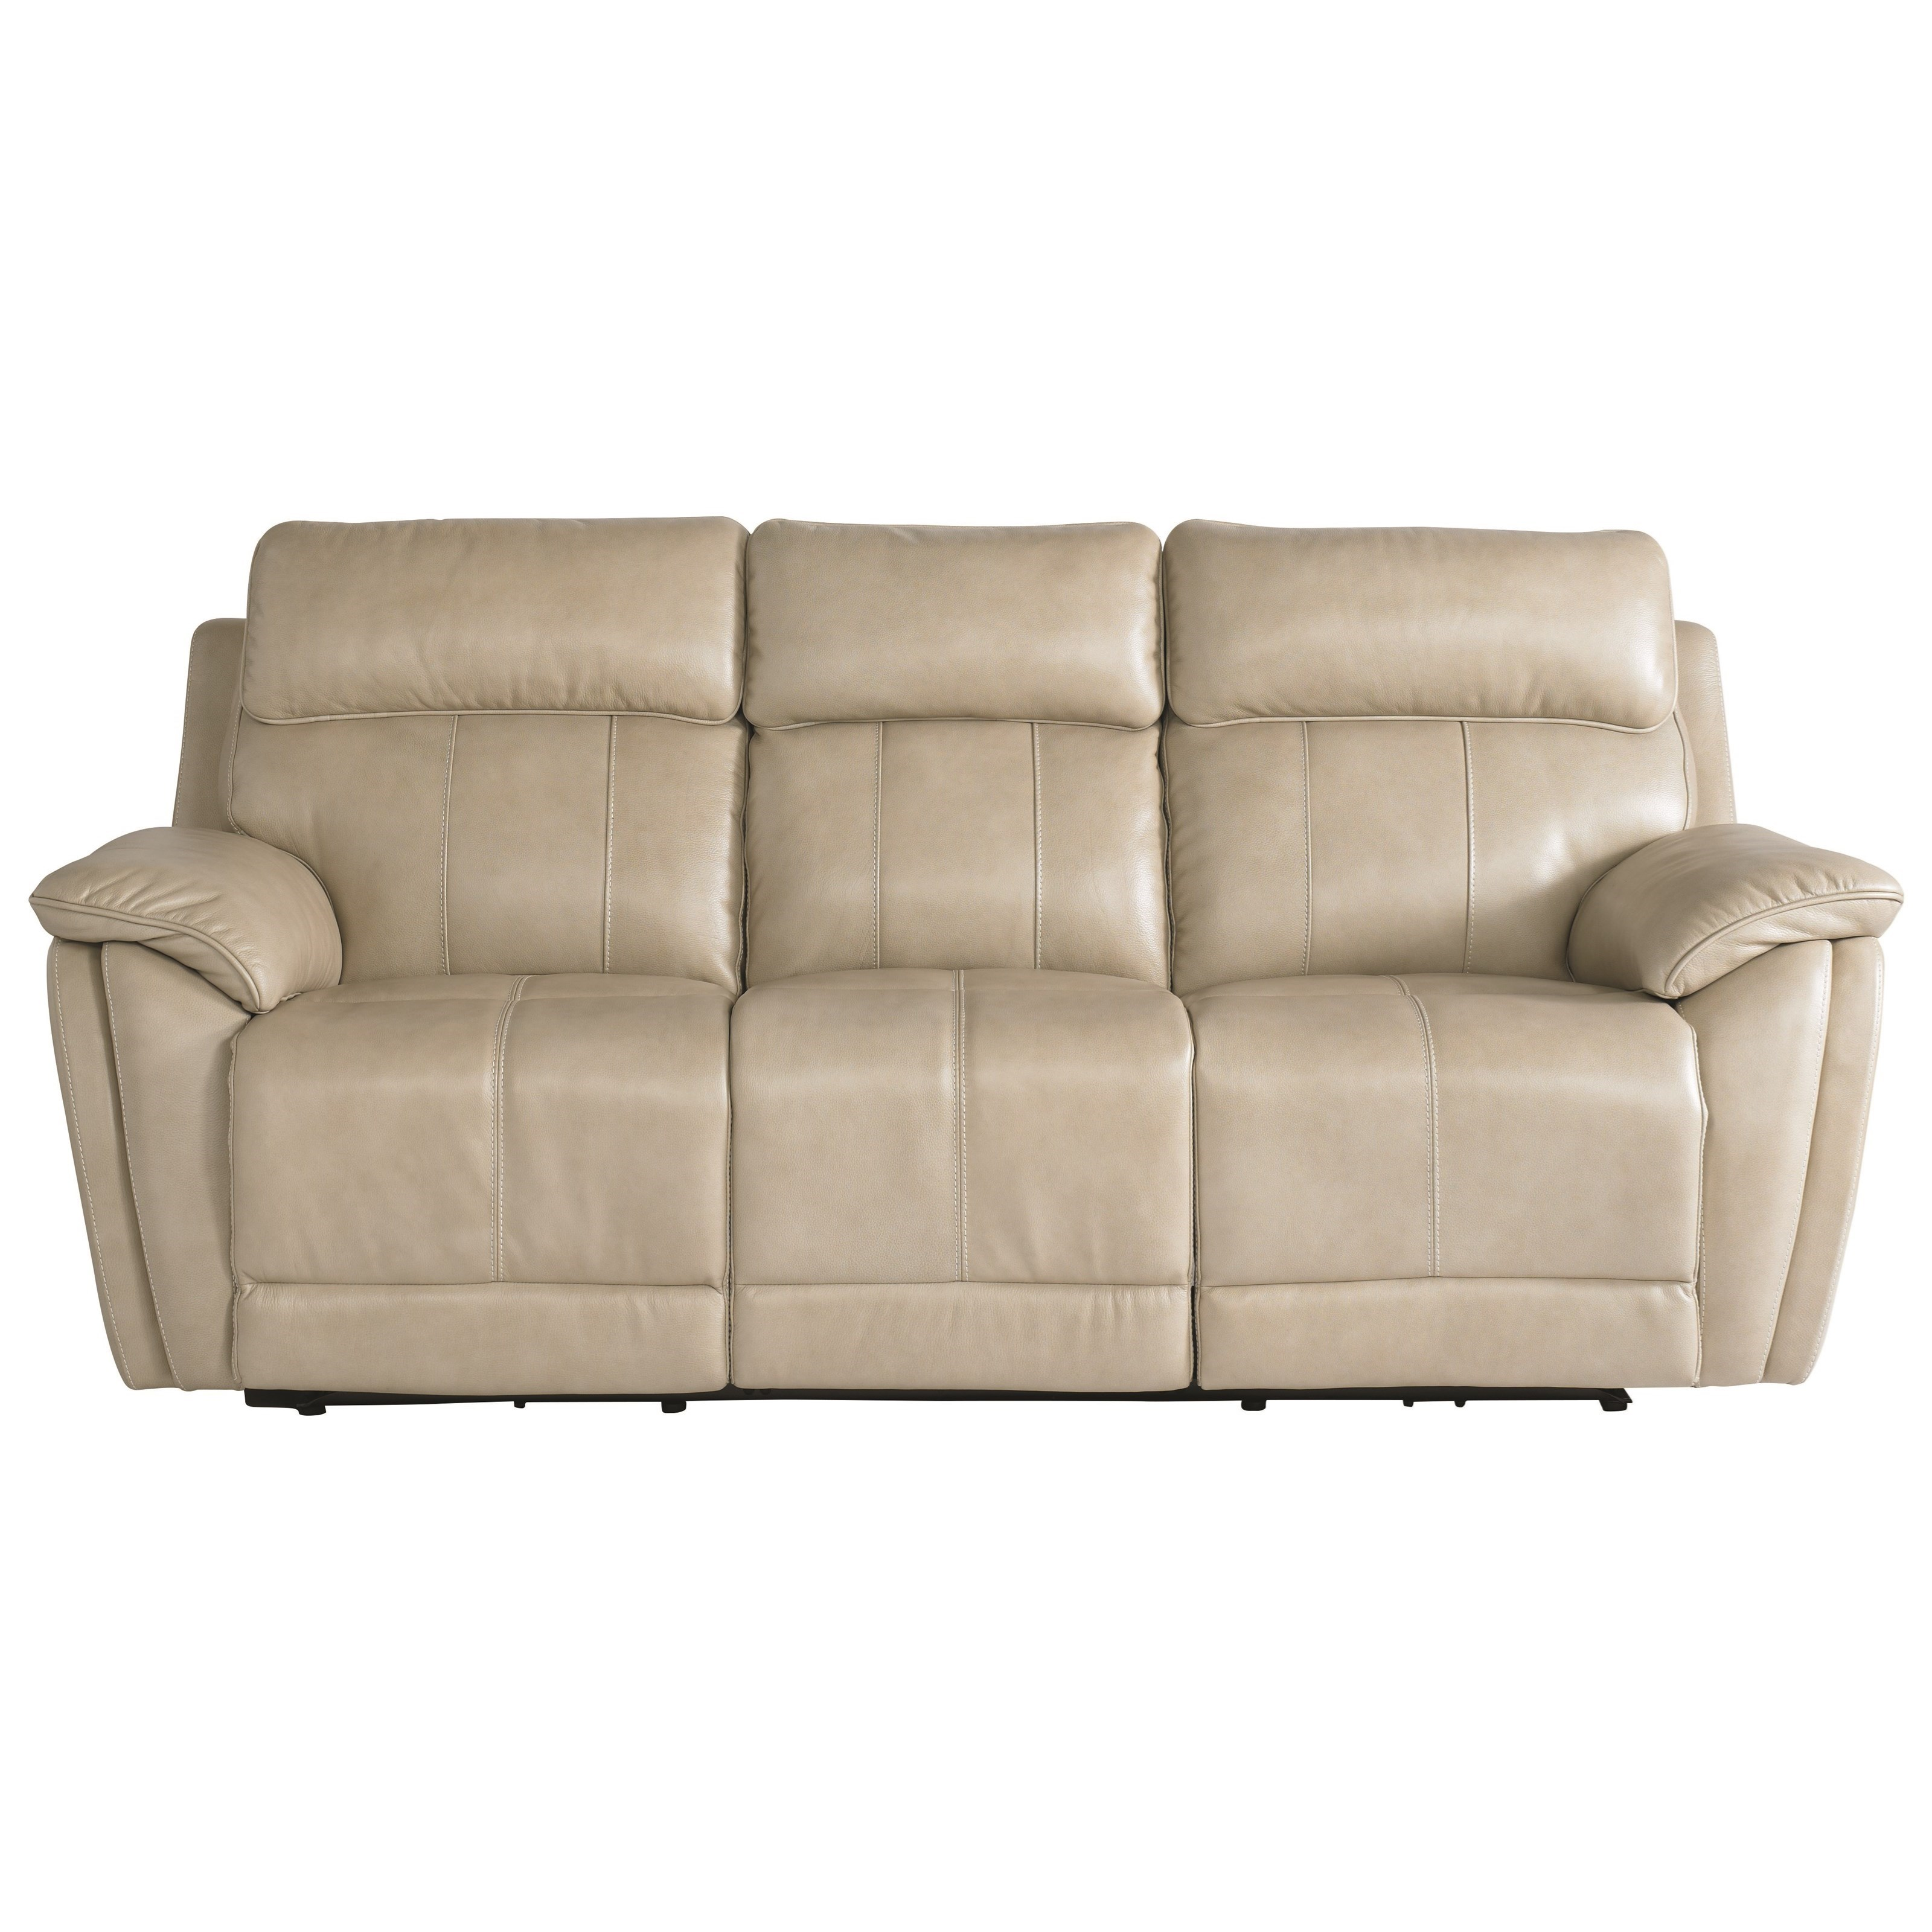 Club Level - Levitate Motion Sofa by Bassett at Darvin Furniture